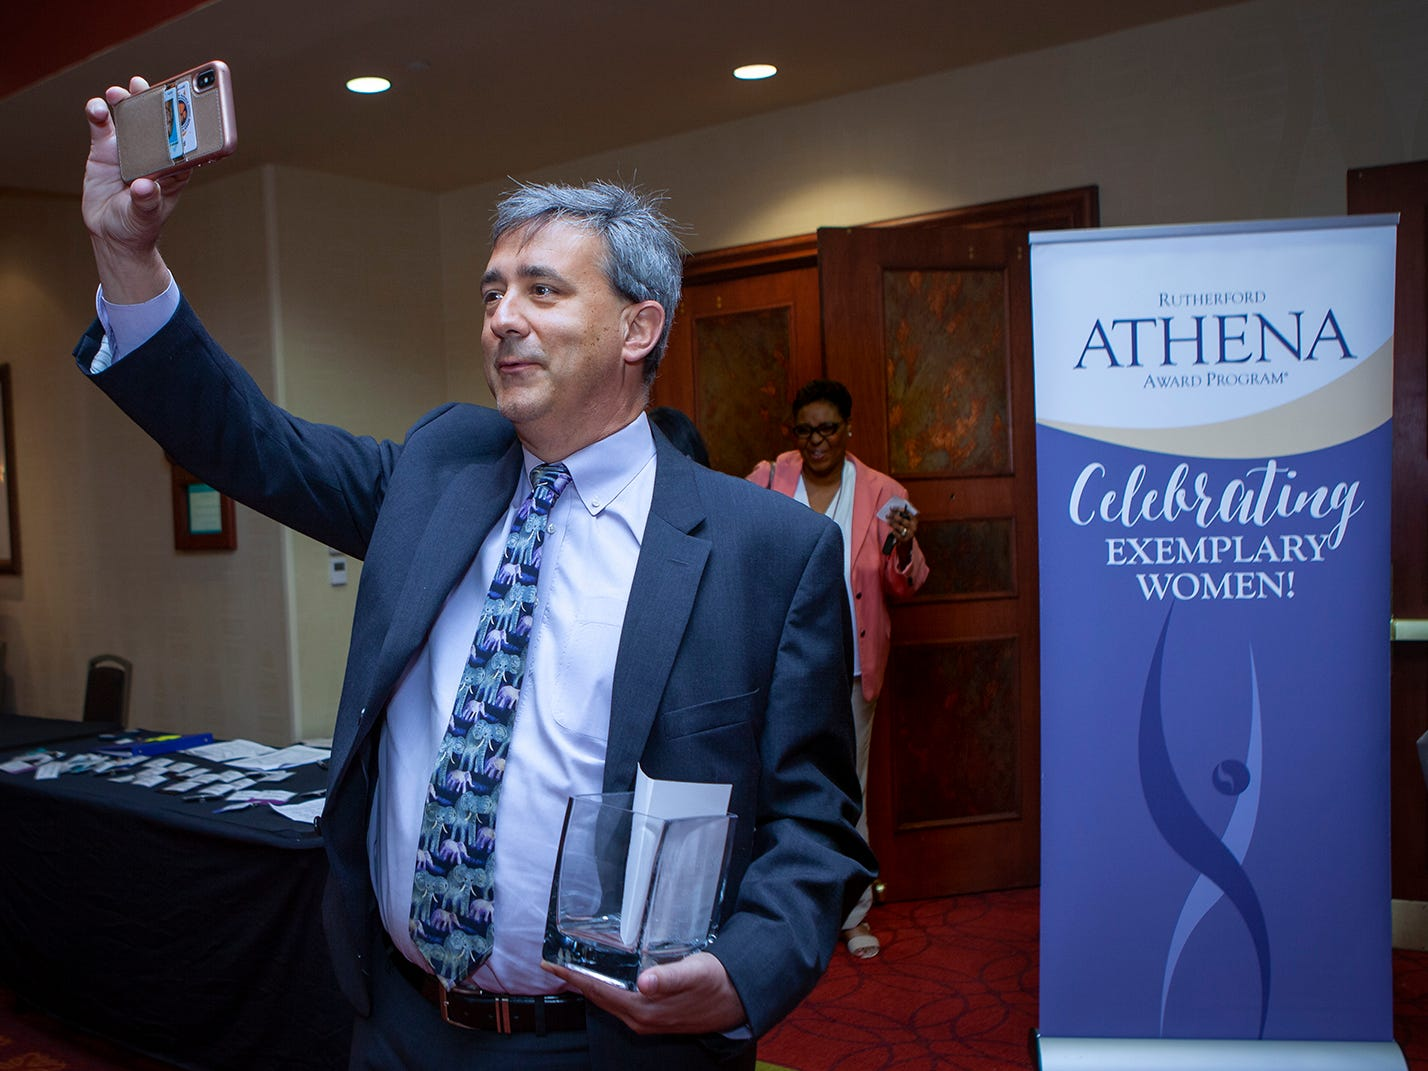 Peter Demos takes a photo of his wife Kristin Demos, a nominee for an ATHENA Award, and friends at the celebration hosted by Rutherford Cable Friday, April 12, 2019 at Embassy Suites Murfreesboro.